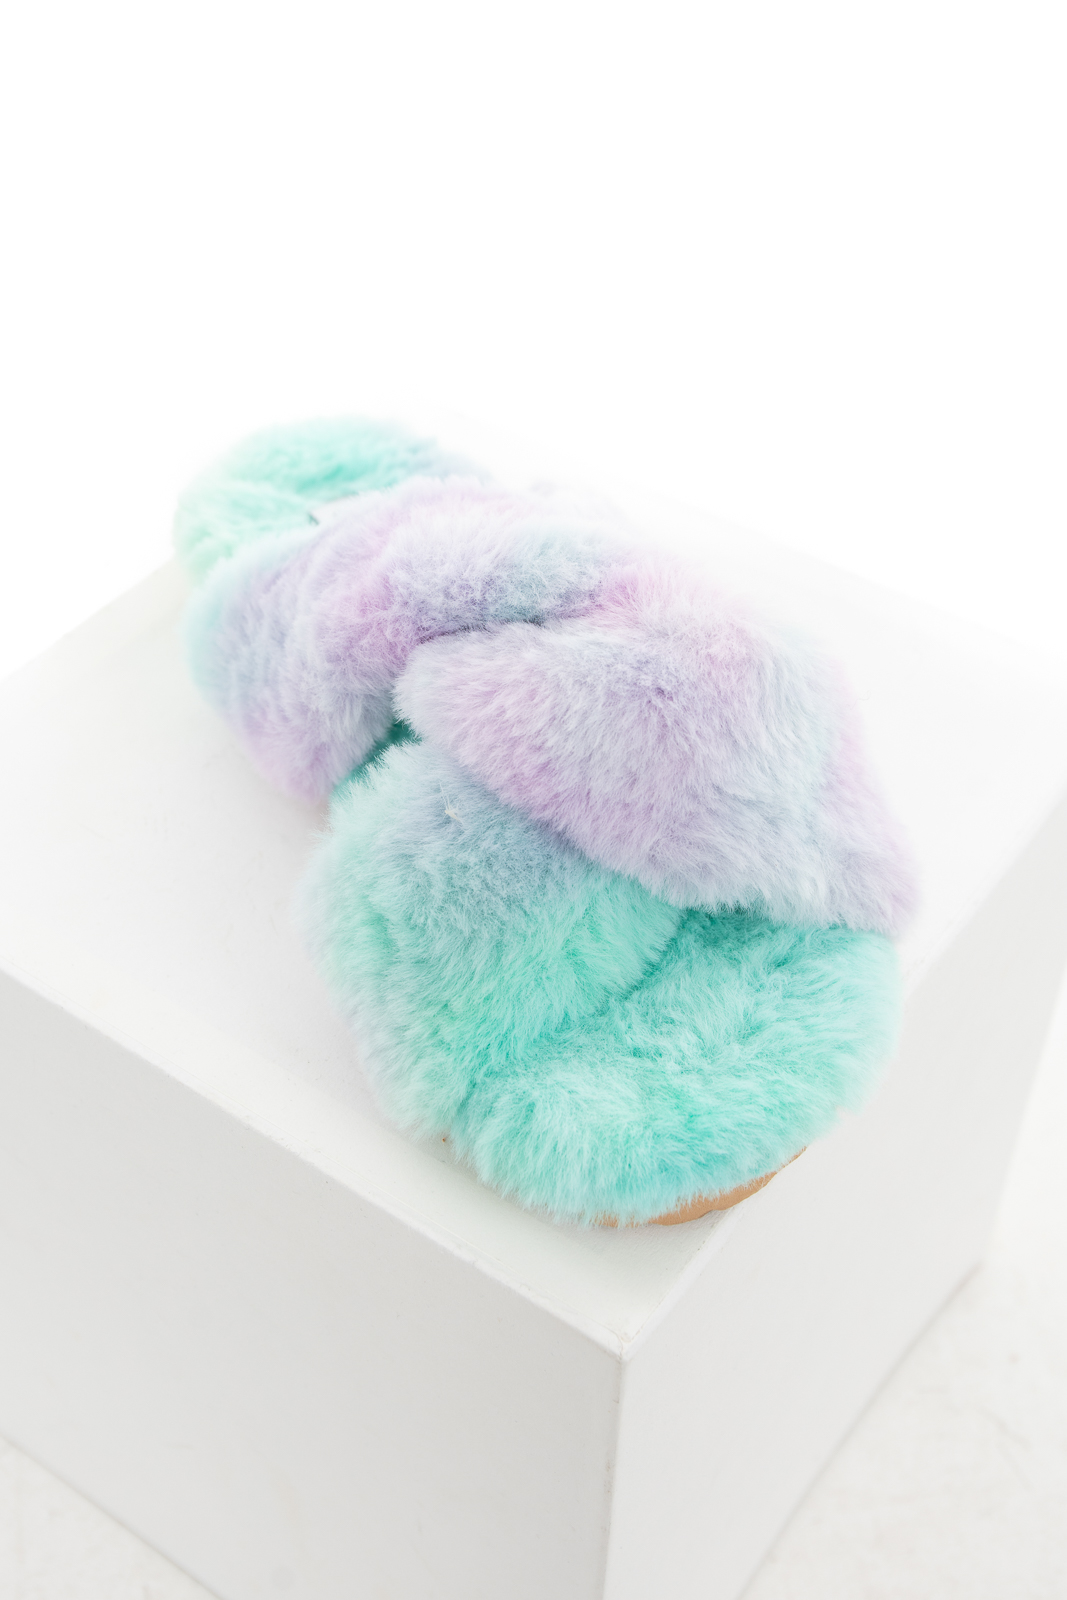 Aqua and Lavender Tie Dye Print Fuzzy Soft Sandal Slippers